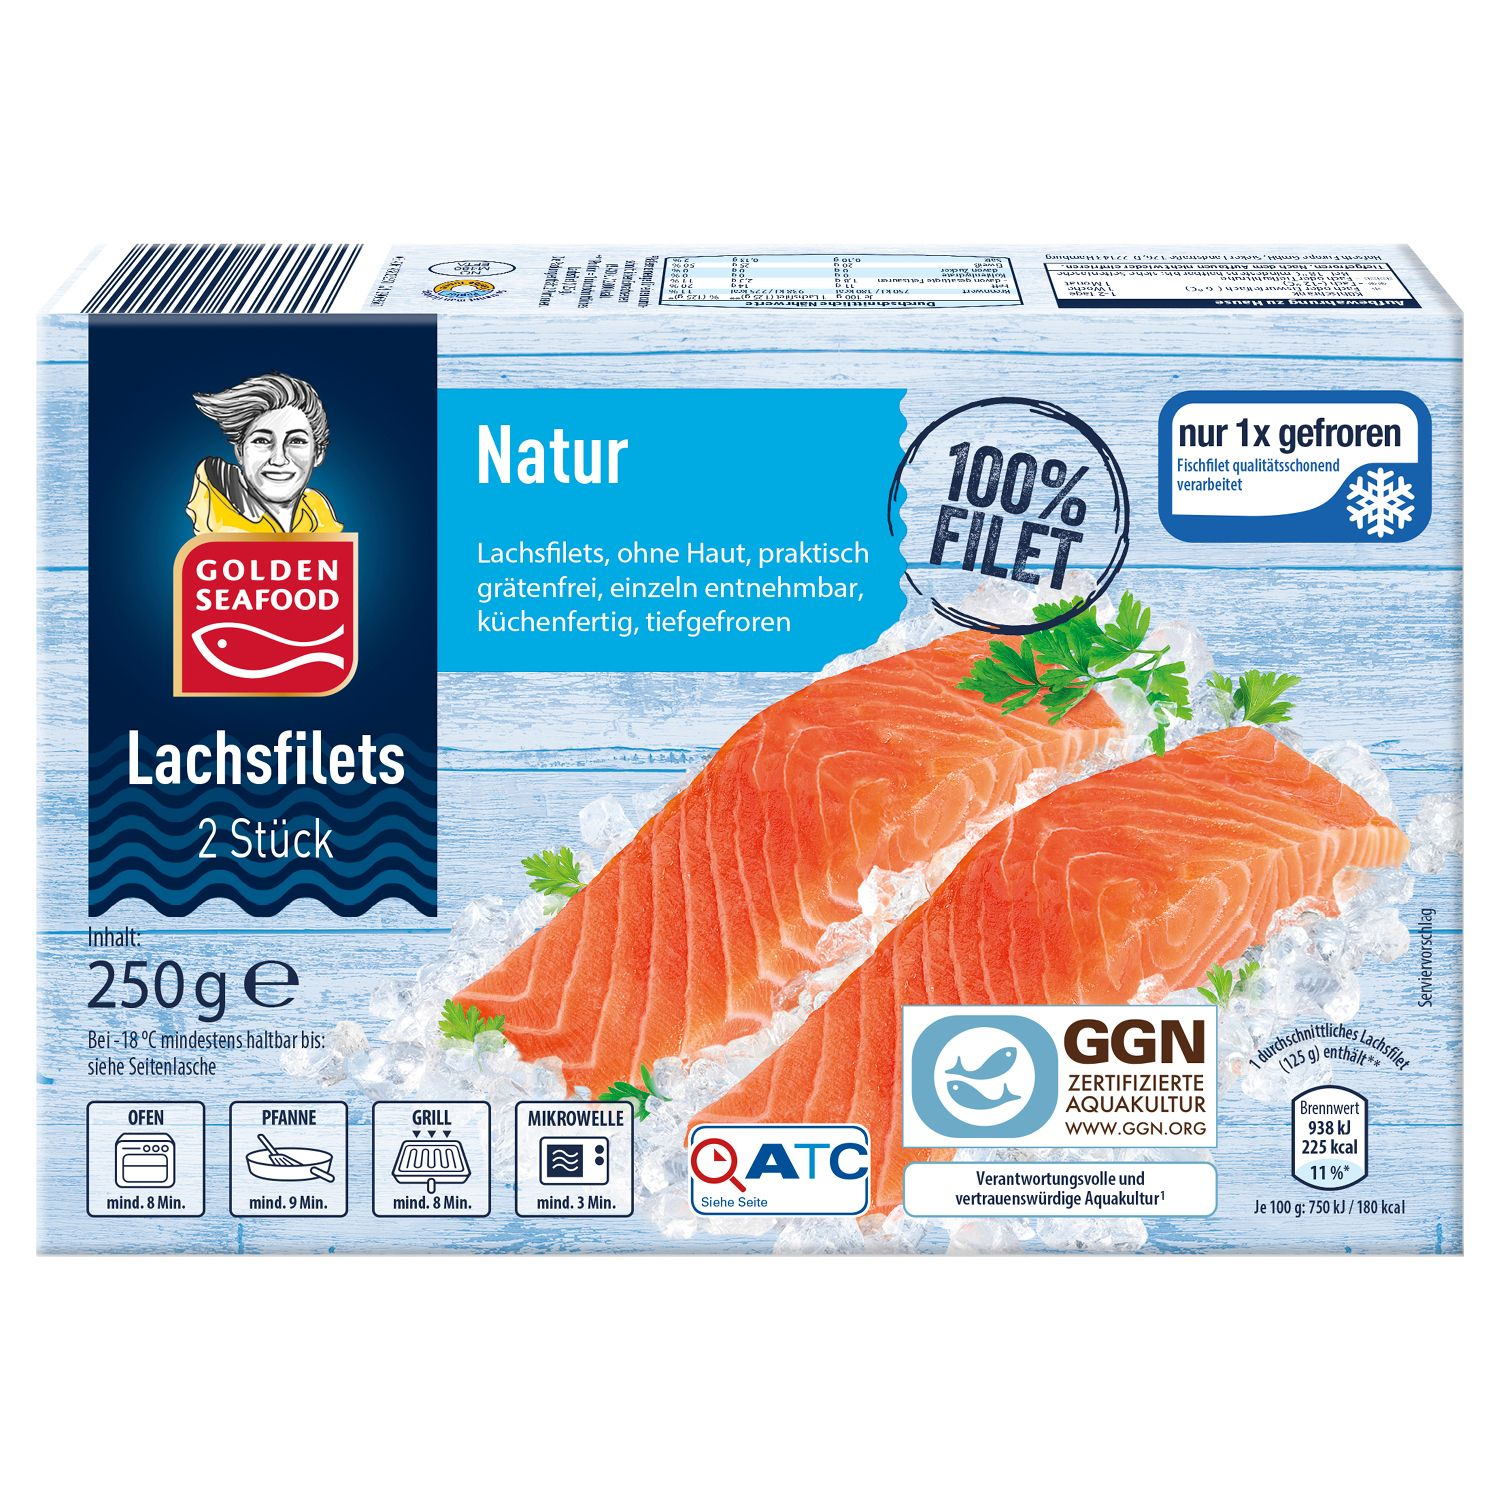 GOLDEN SEAFOOD Lachsfilets 250 g